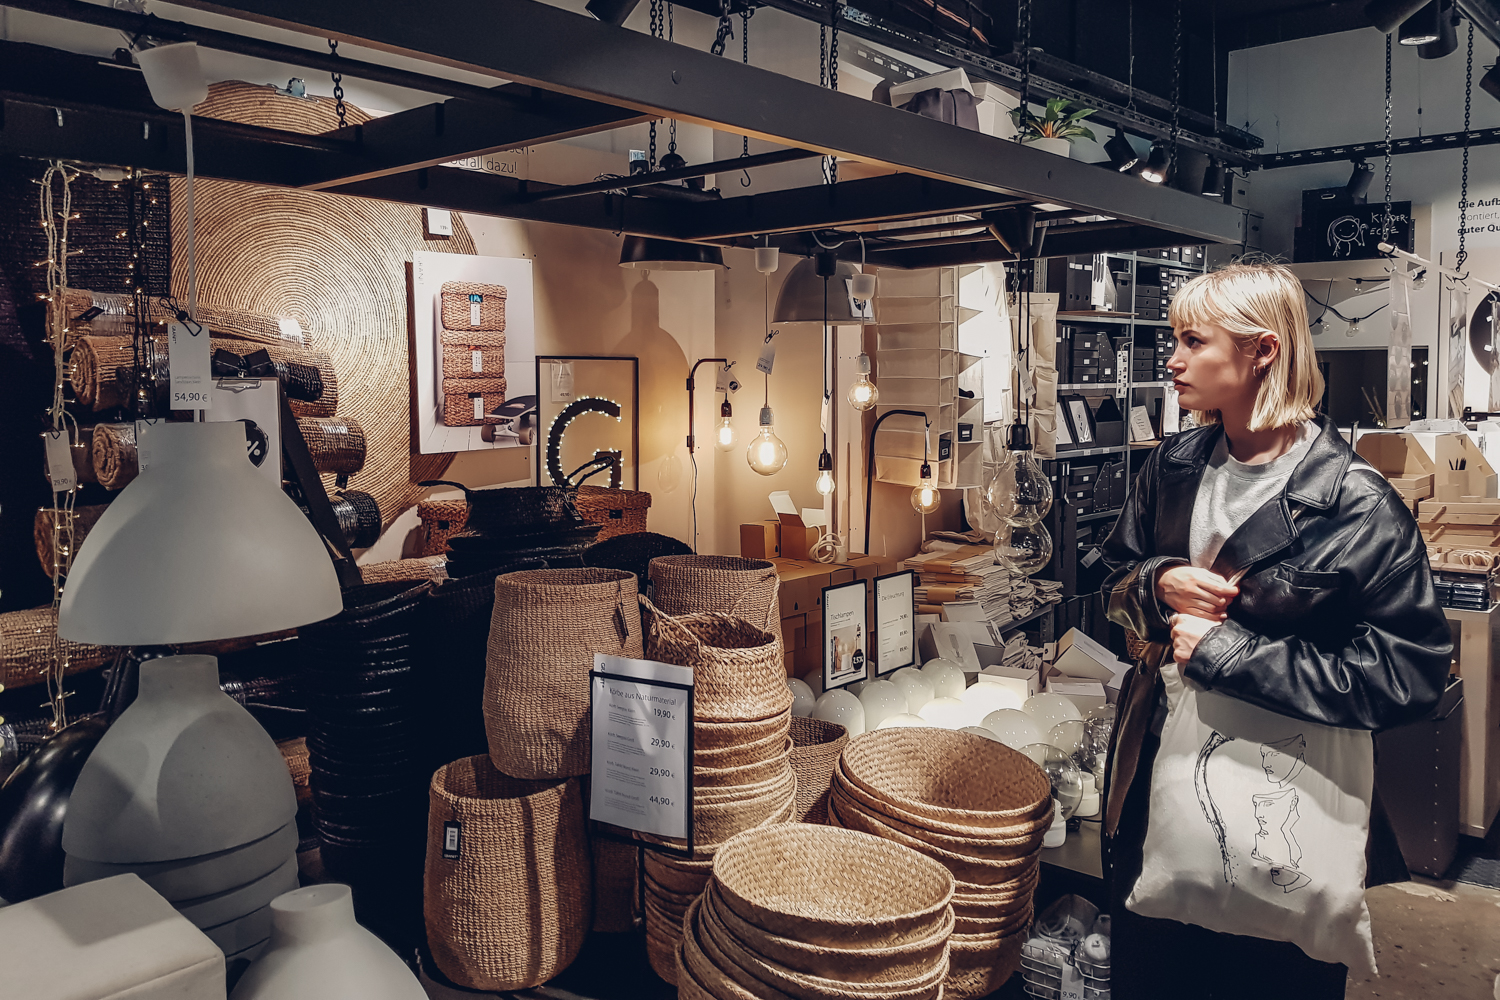 The Granit Stores in Berlin: Simplify Your Life with Swedish Design